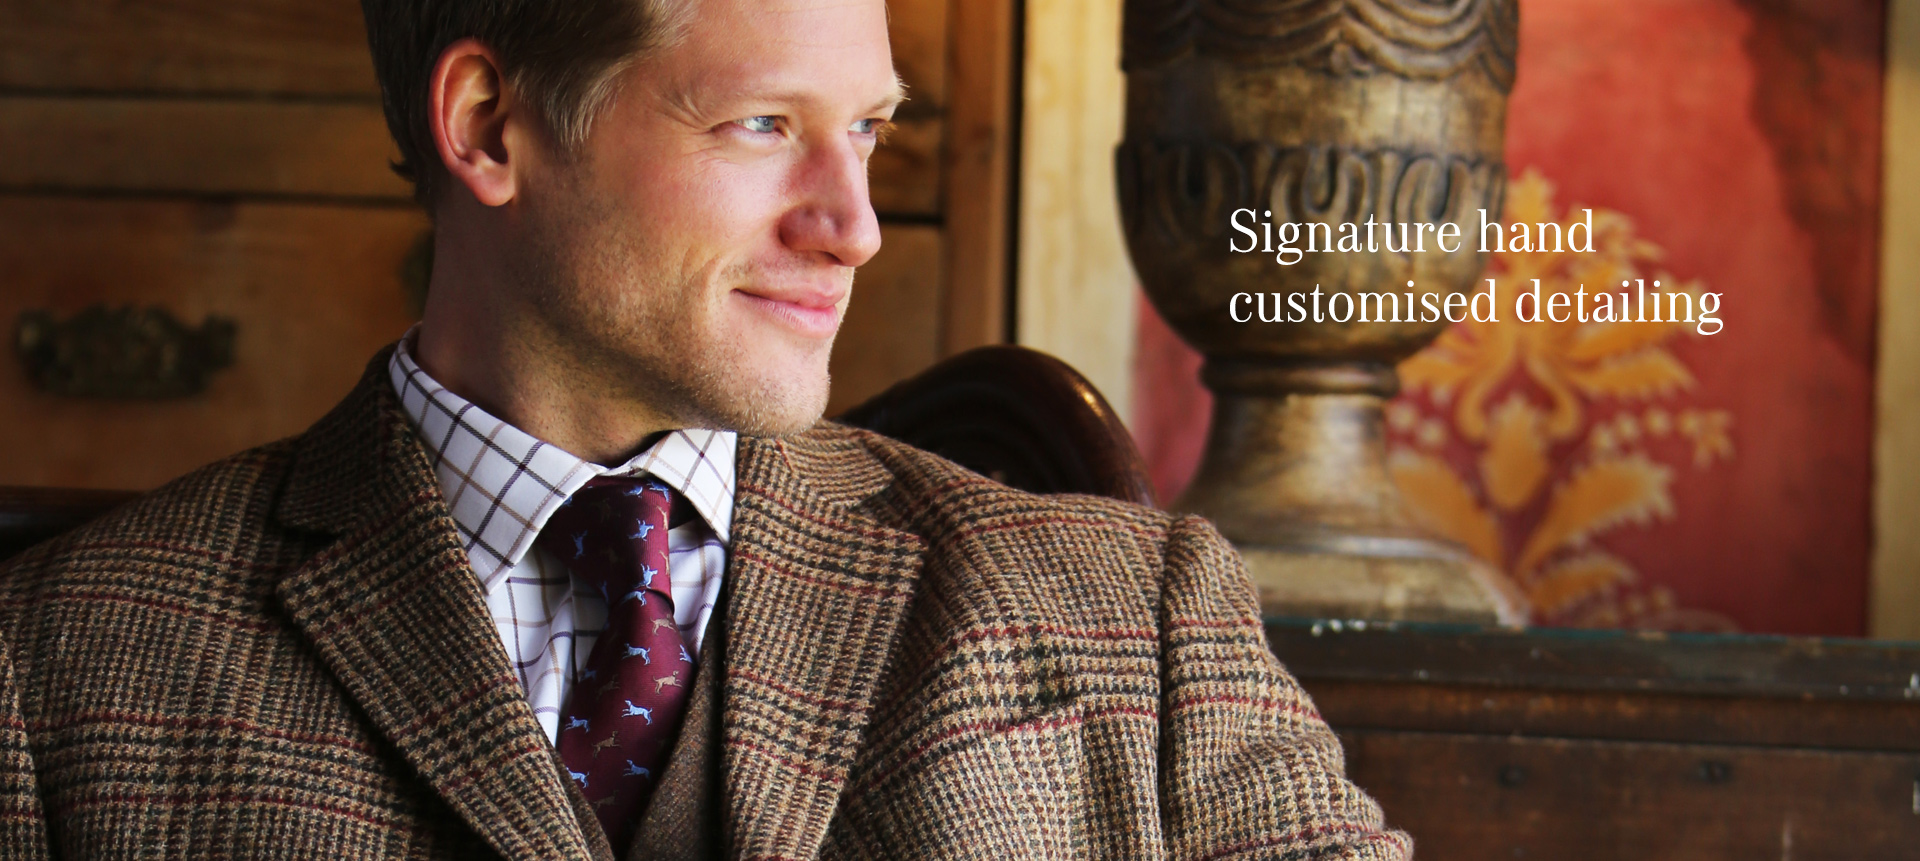 Signature, hand customised detailing on our shooting socks and shooting clothing